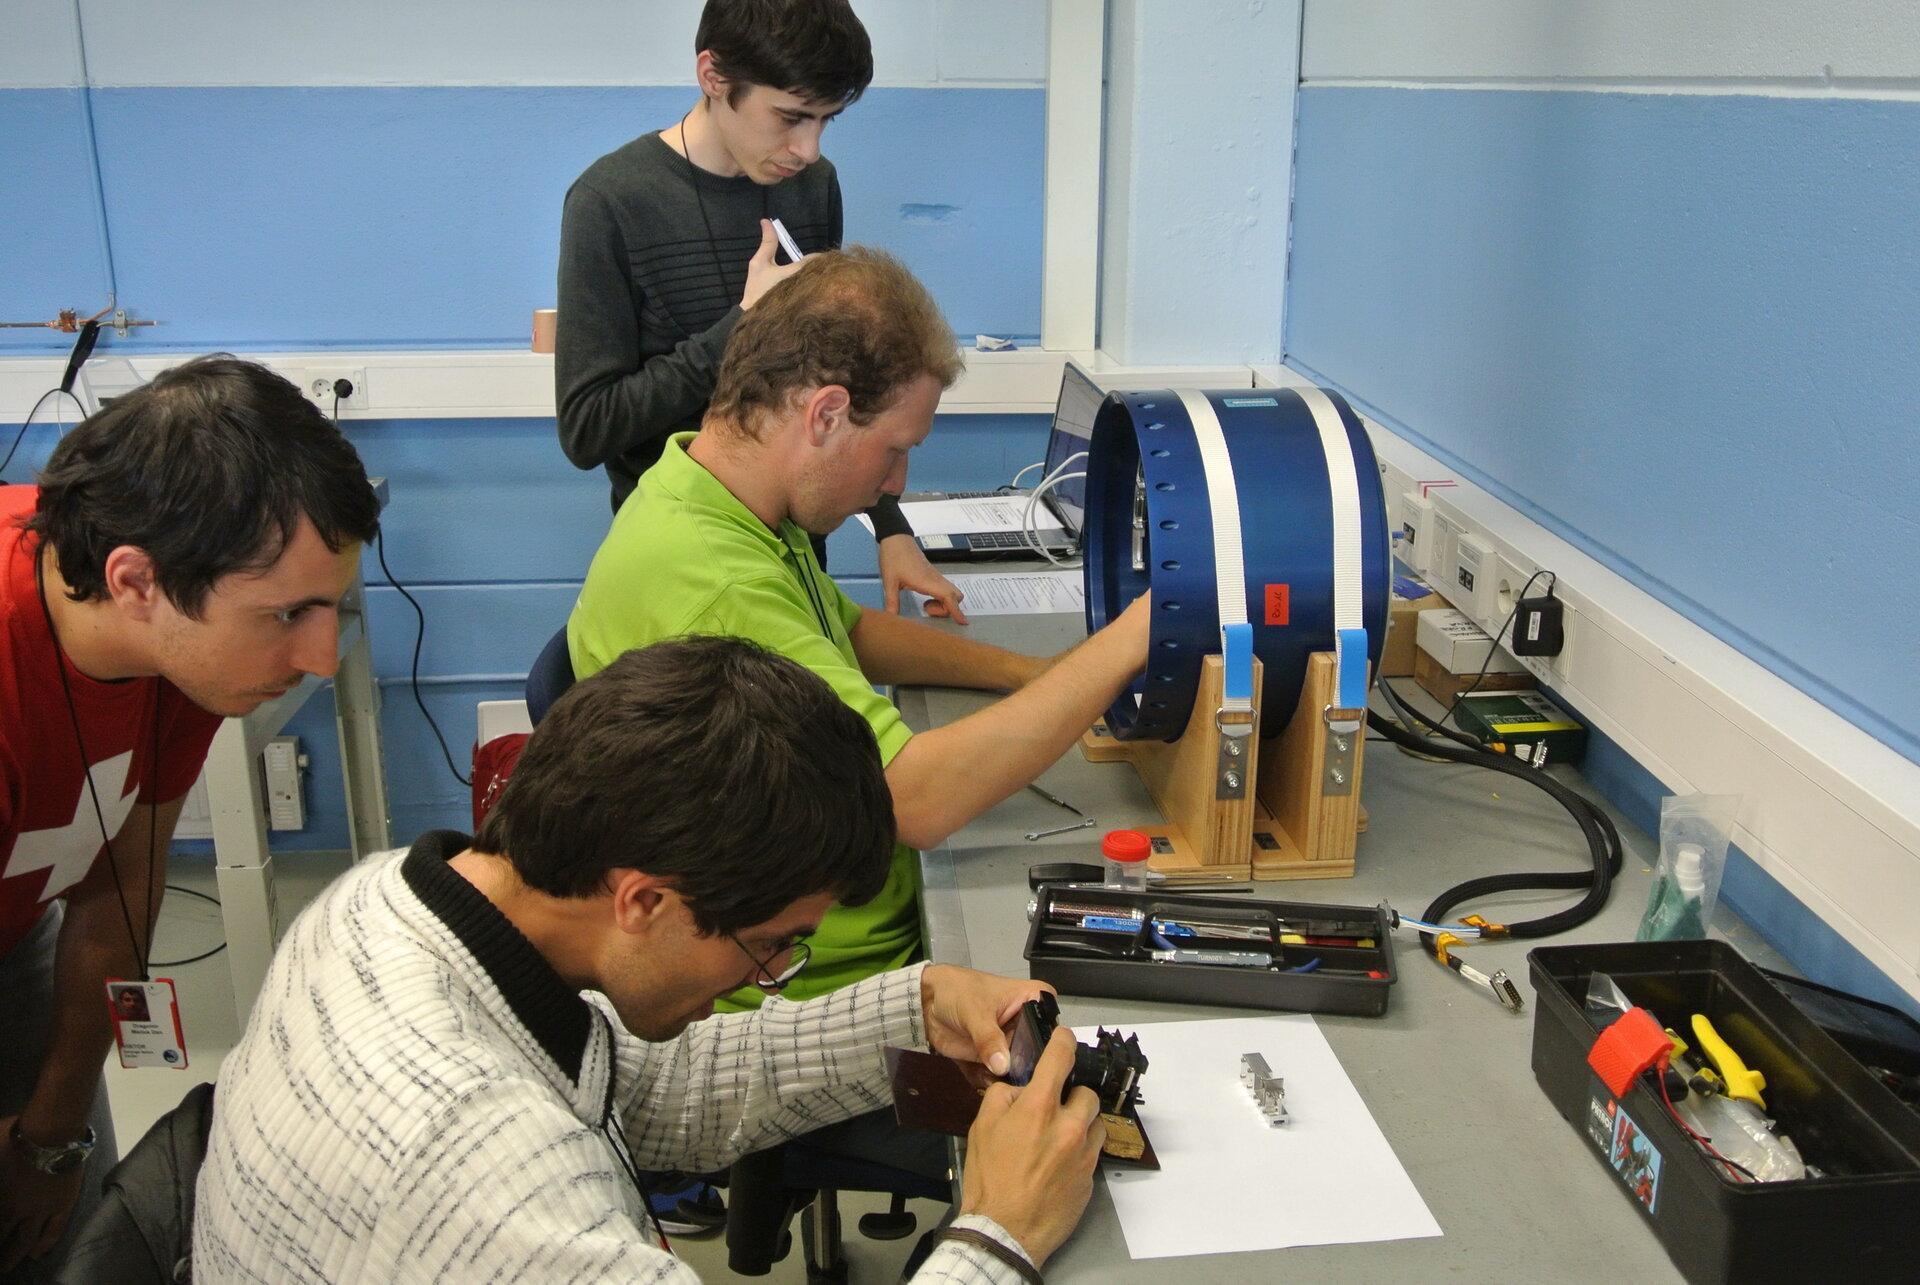 The REXUS 16 - LOW GRAVITY students are preparing their experiment for flight